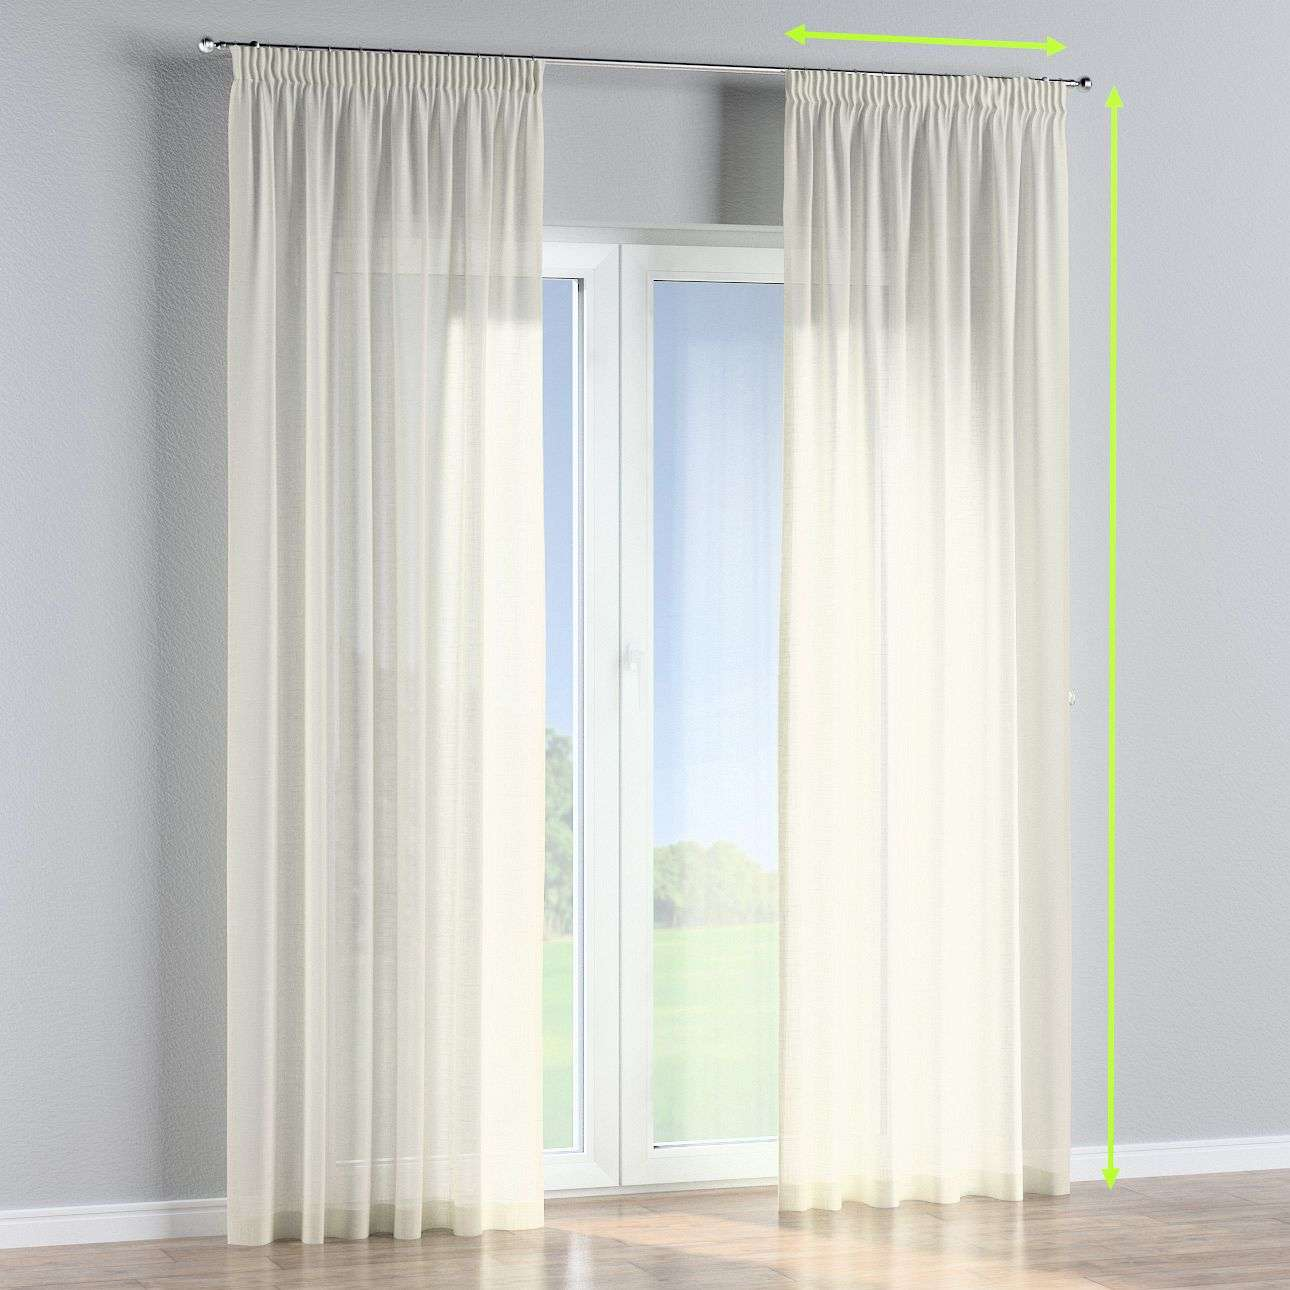 Pencil pleat lined curtains in collection Romantica, fabric: 128-88